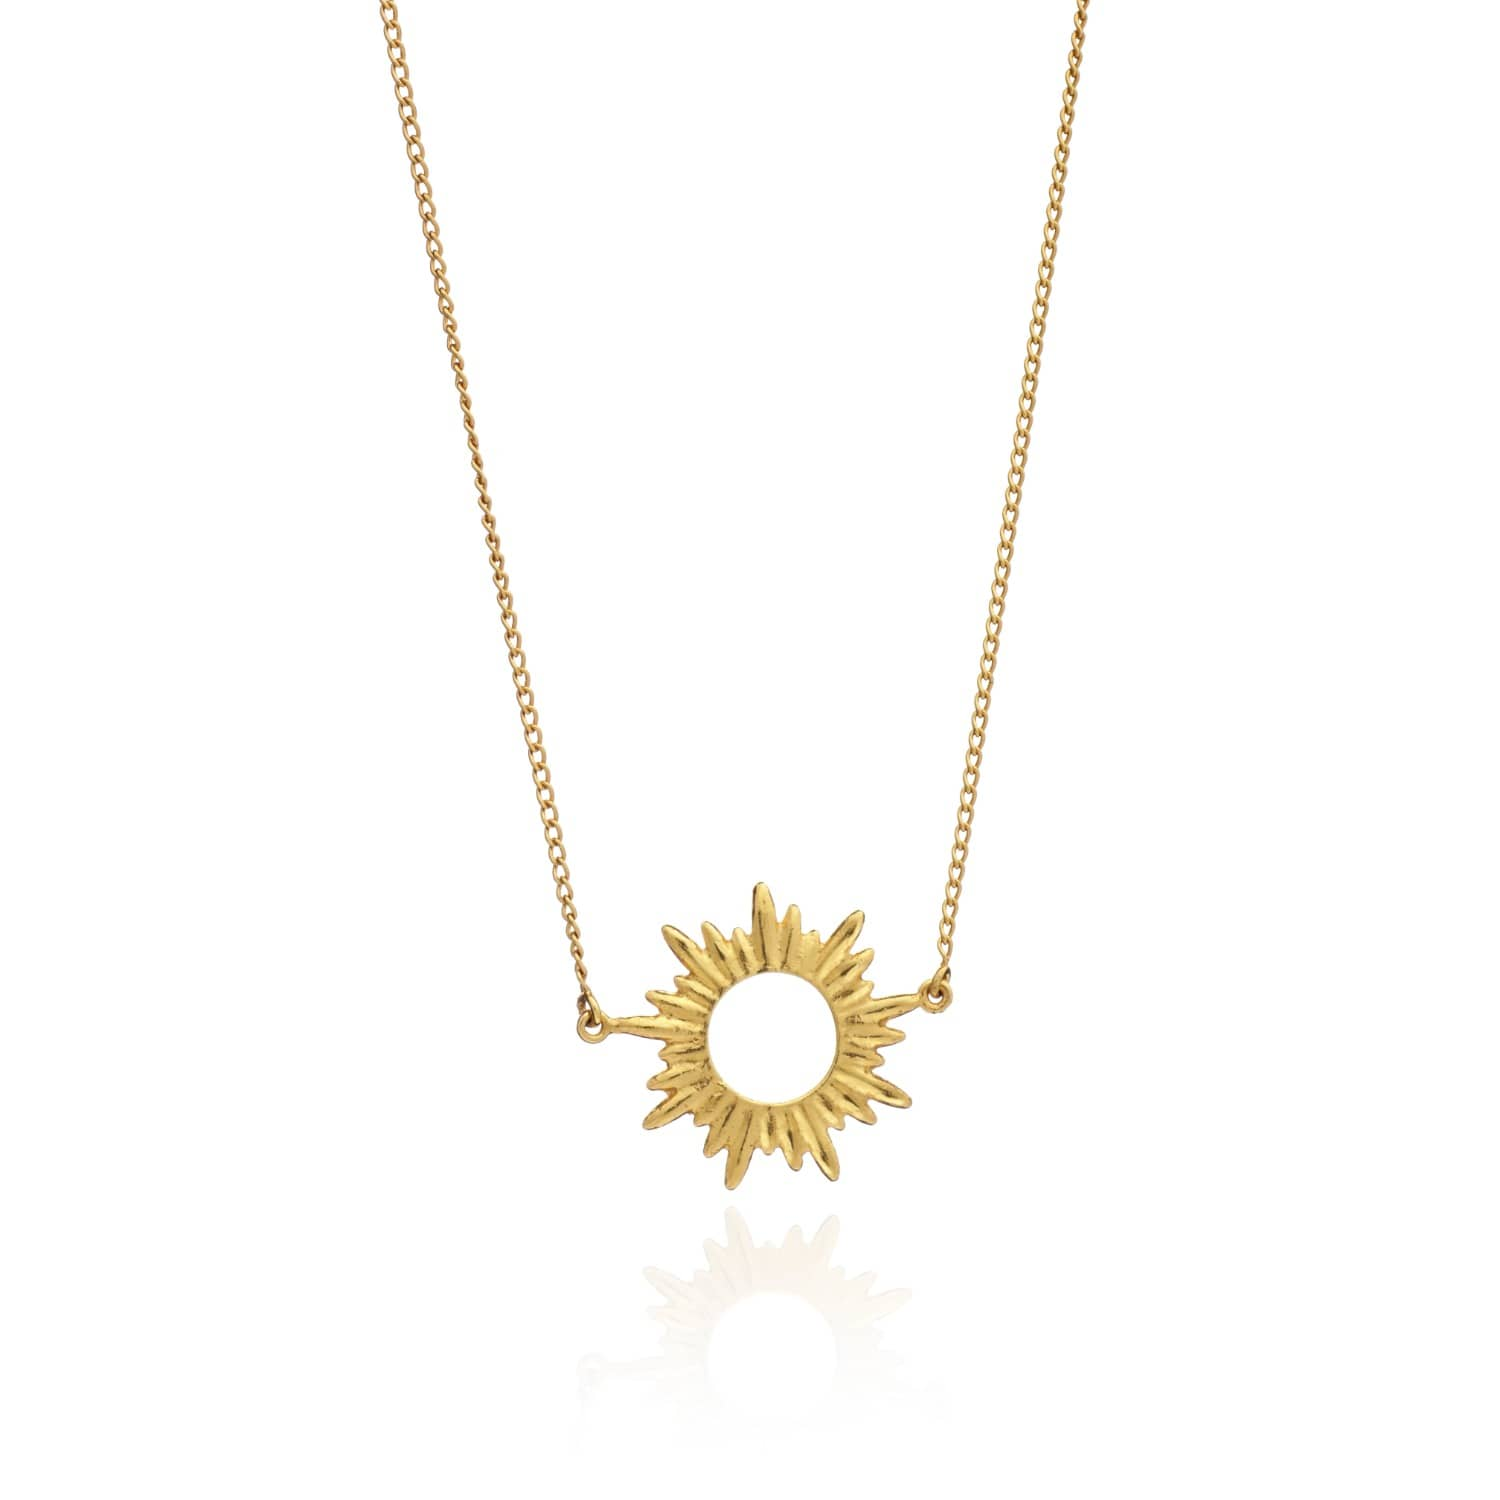 Art Deco Style Jewelry Boxes Sunrays Short Necklace In Gold By Rachel Jackson London